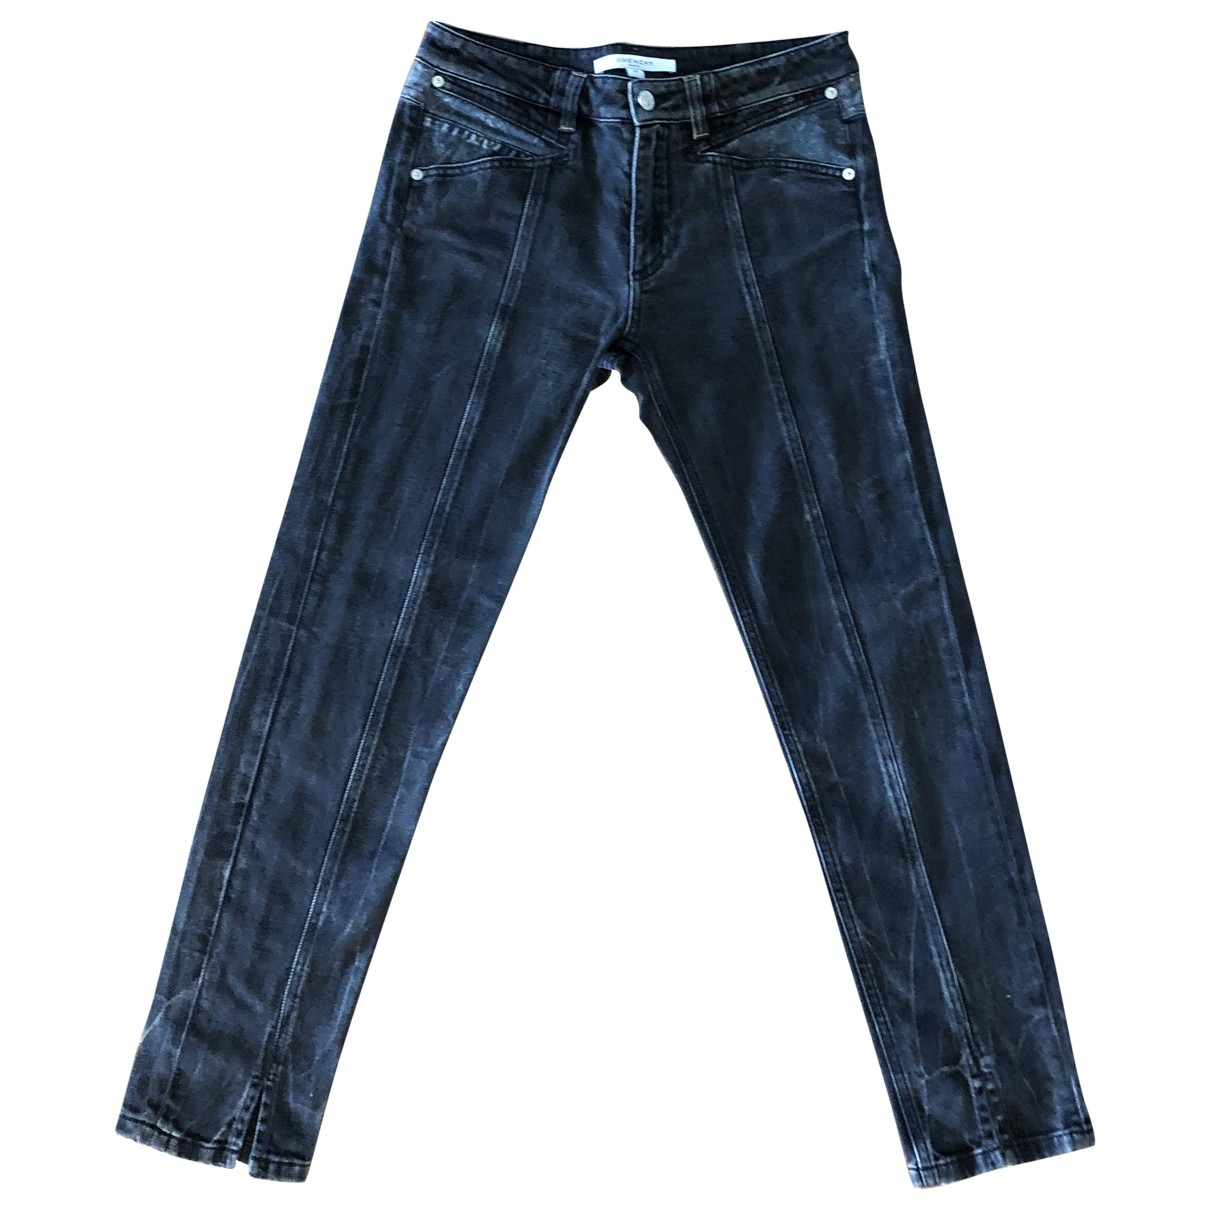 Givenchy \N Blue Denim - Jeans Trousers for Women 38 FR